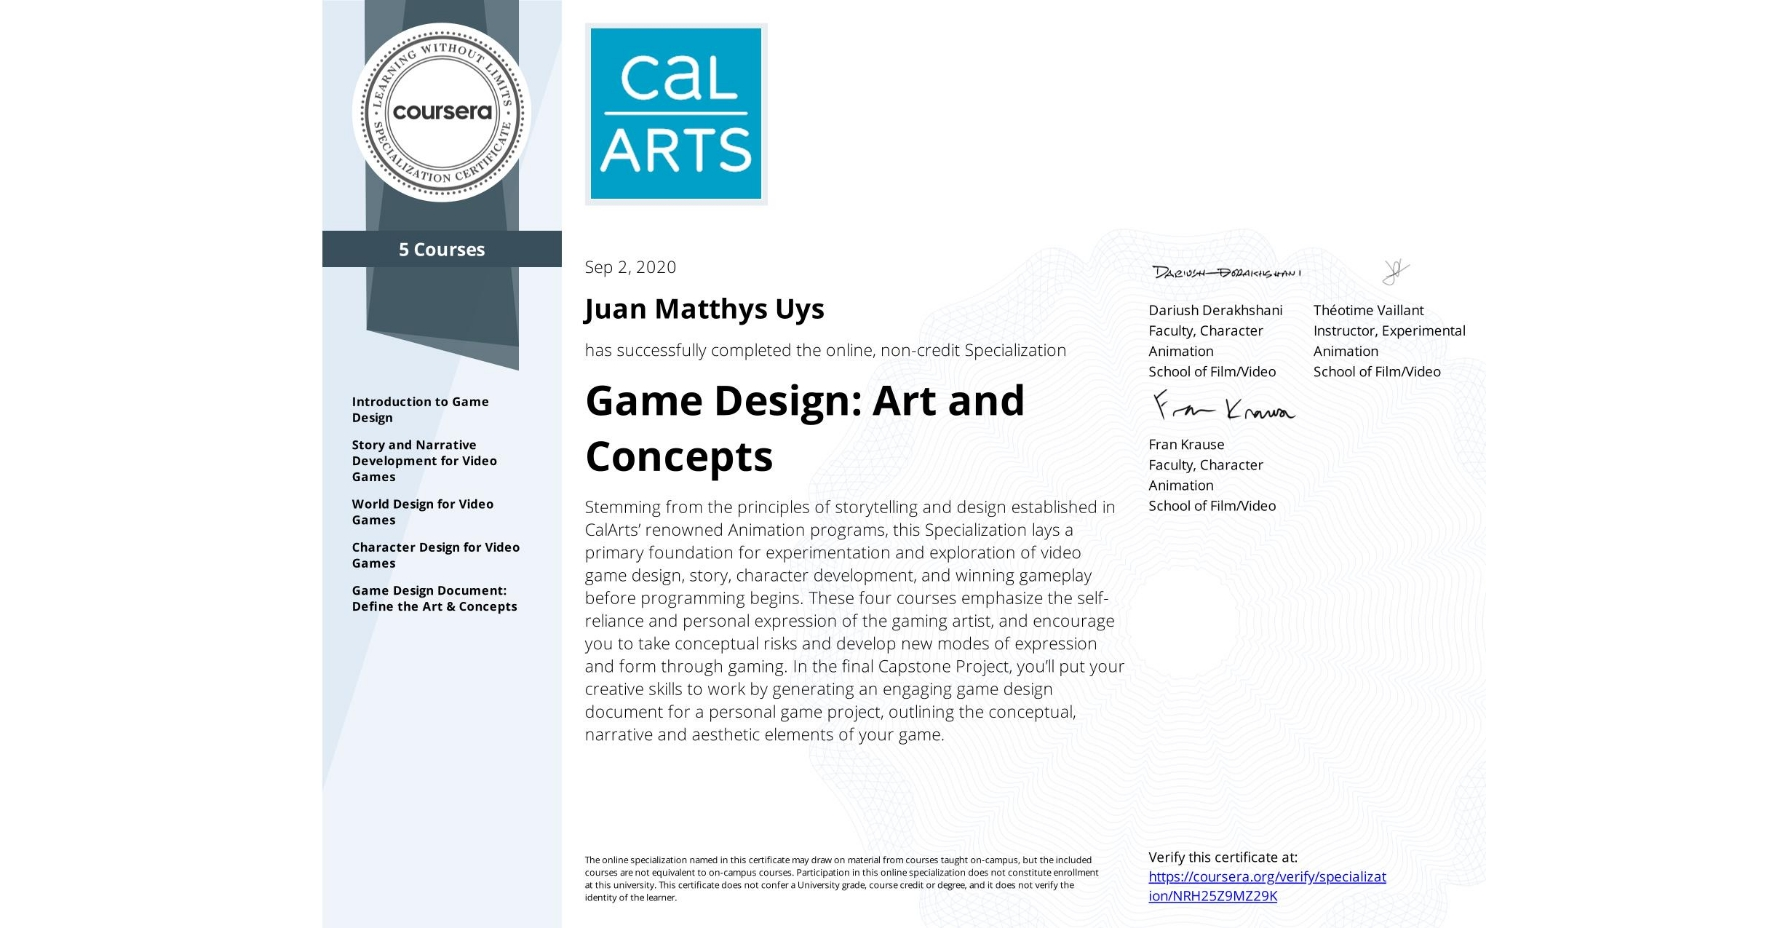 View certificate for Juan Matthys Uys, Game Design: Art and Concepts, offered through Coursera. Stemming from the principles of storytelling and design established in CalArts' renowned Animation programs, this Specialization lays a primary foundation for experimentation and exploration of video game design, story, character development, and winning gameplay before programming begins. These four courses emphasize the self-reliance and personal expression of the gaming artist, and encourage you to take conceptual risks and develop new modes of expression and form through gaming. In the final Capstone Project, you'll put your creative skills to work by generating an engaging game design document for a personal game project, outlining the conceptual, narrative and aesthetic elements of your game.